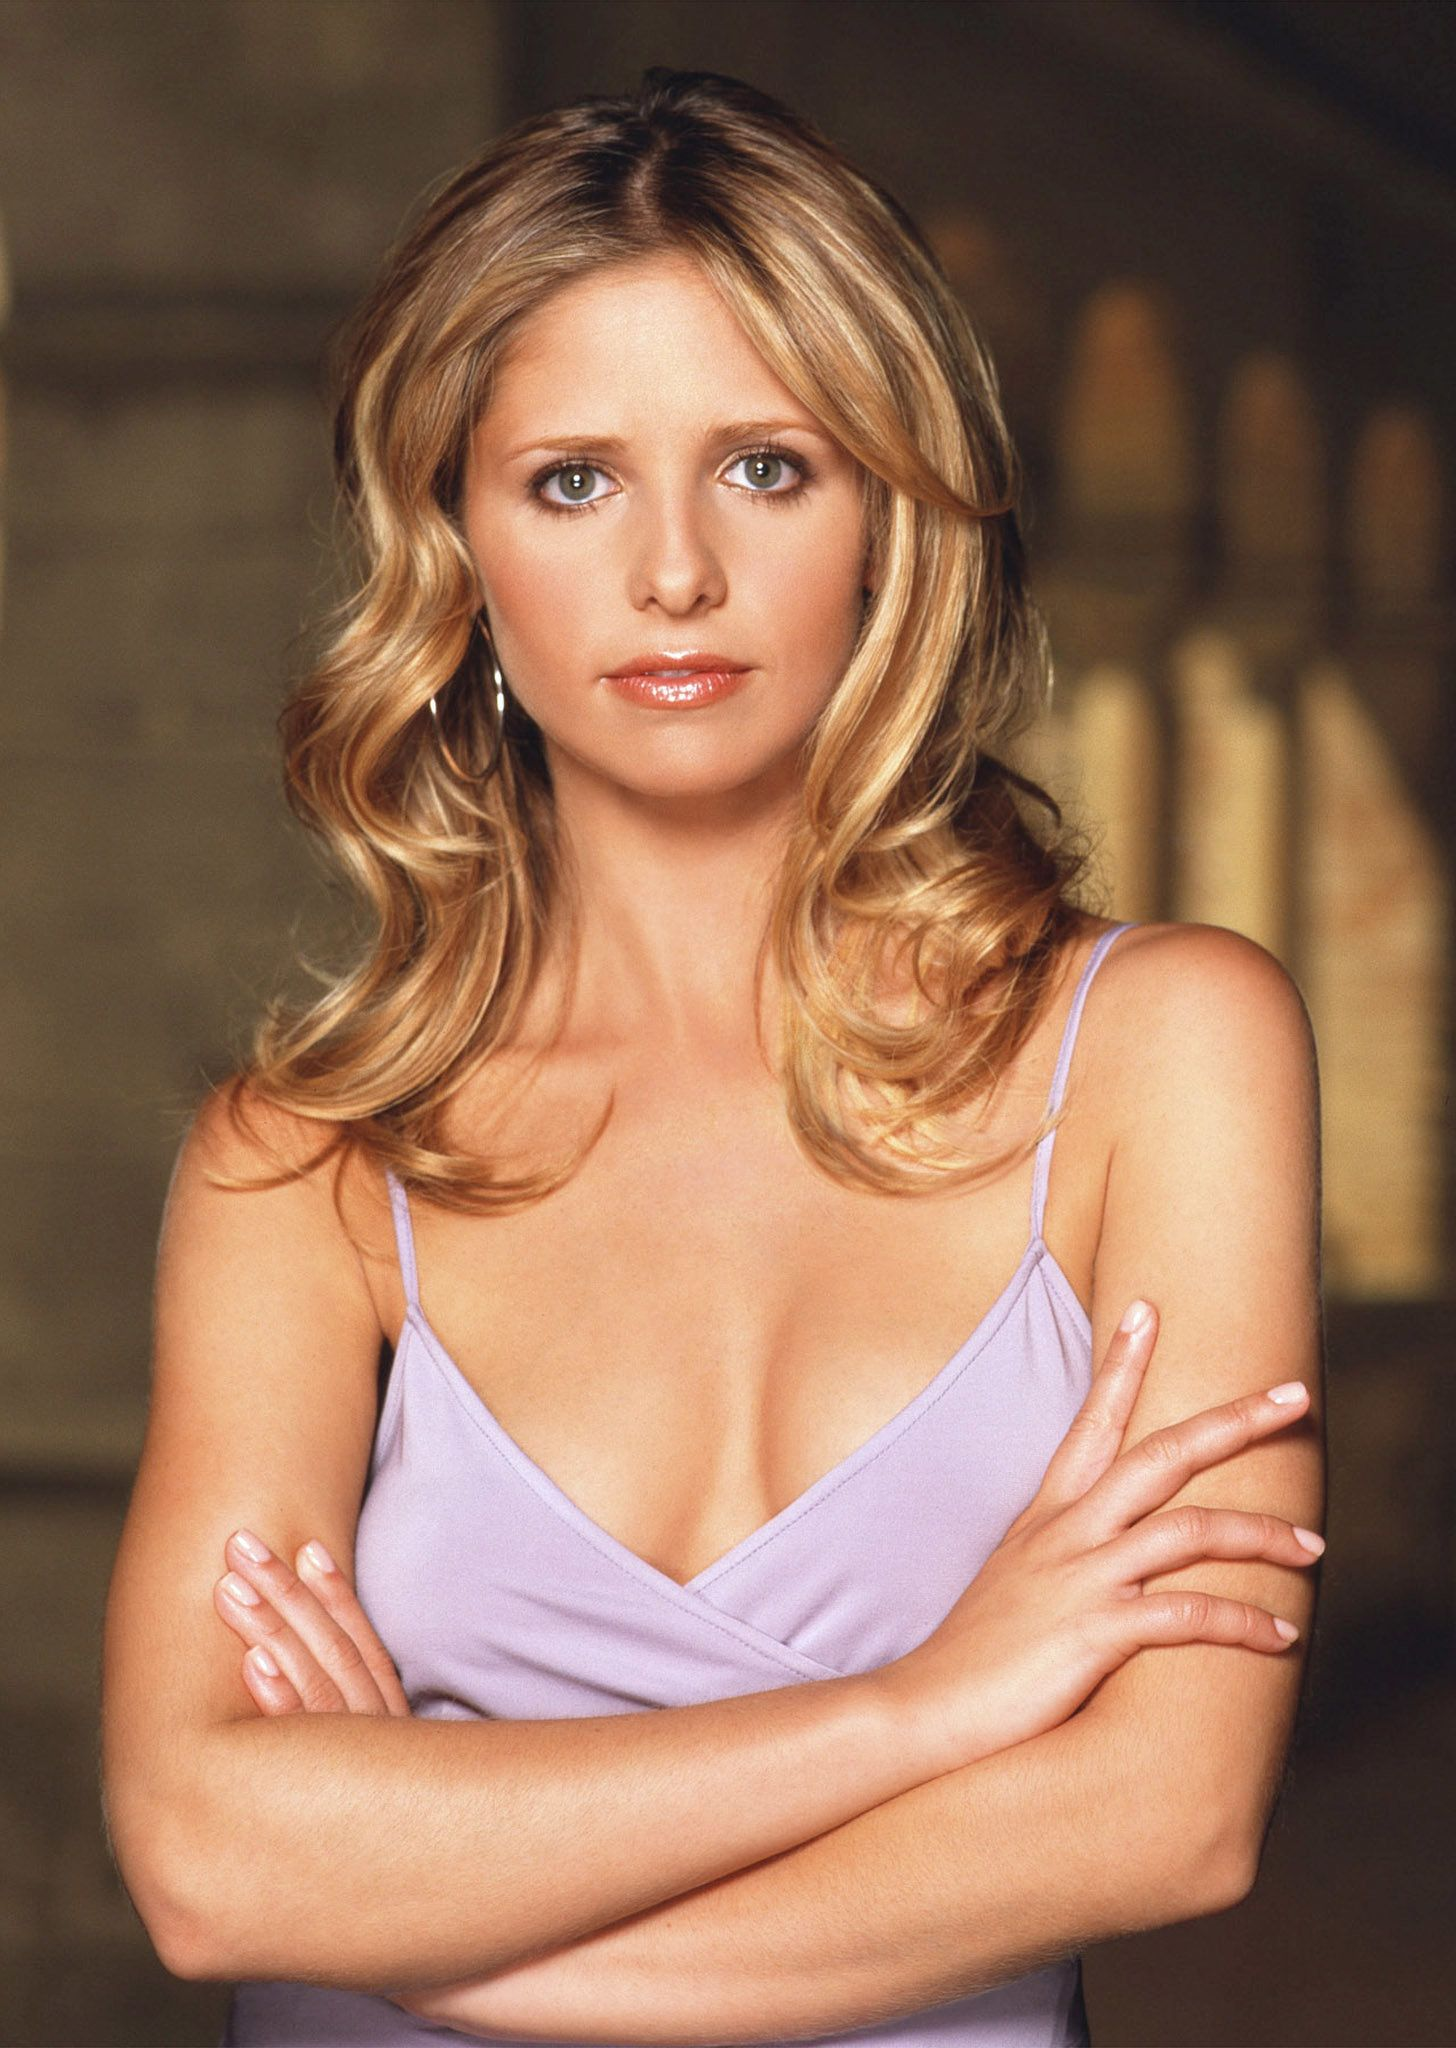 Buffy The Vampire Slayer: 9 Things It Taught Us About